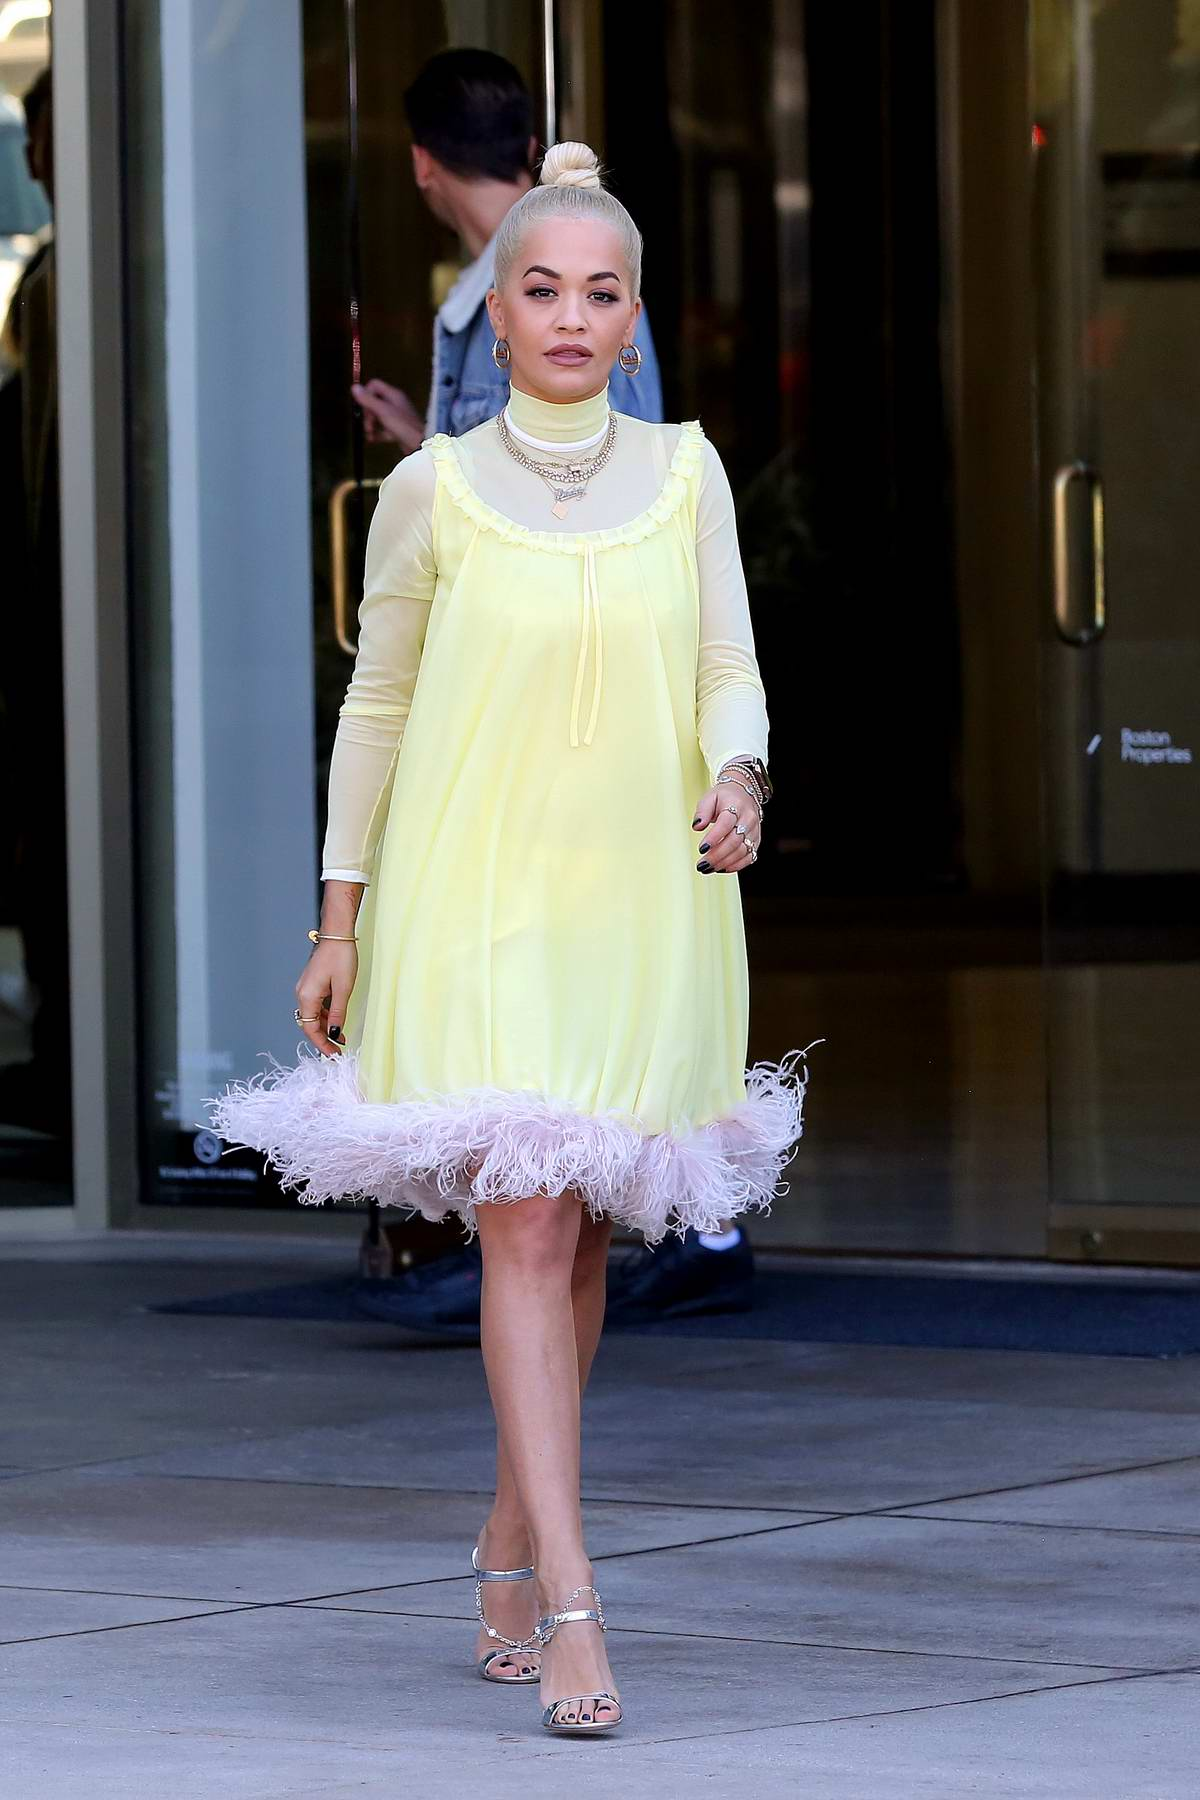 Rita Ora seen wearing a yellow dress with a pair of silver heels as she heads out in Los Angeles